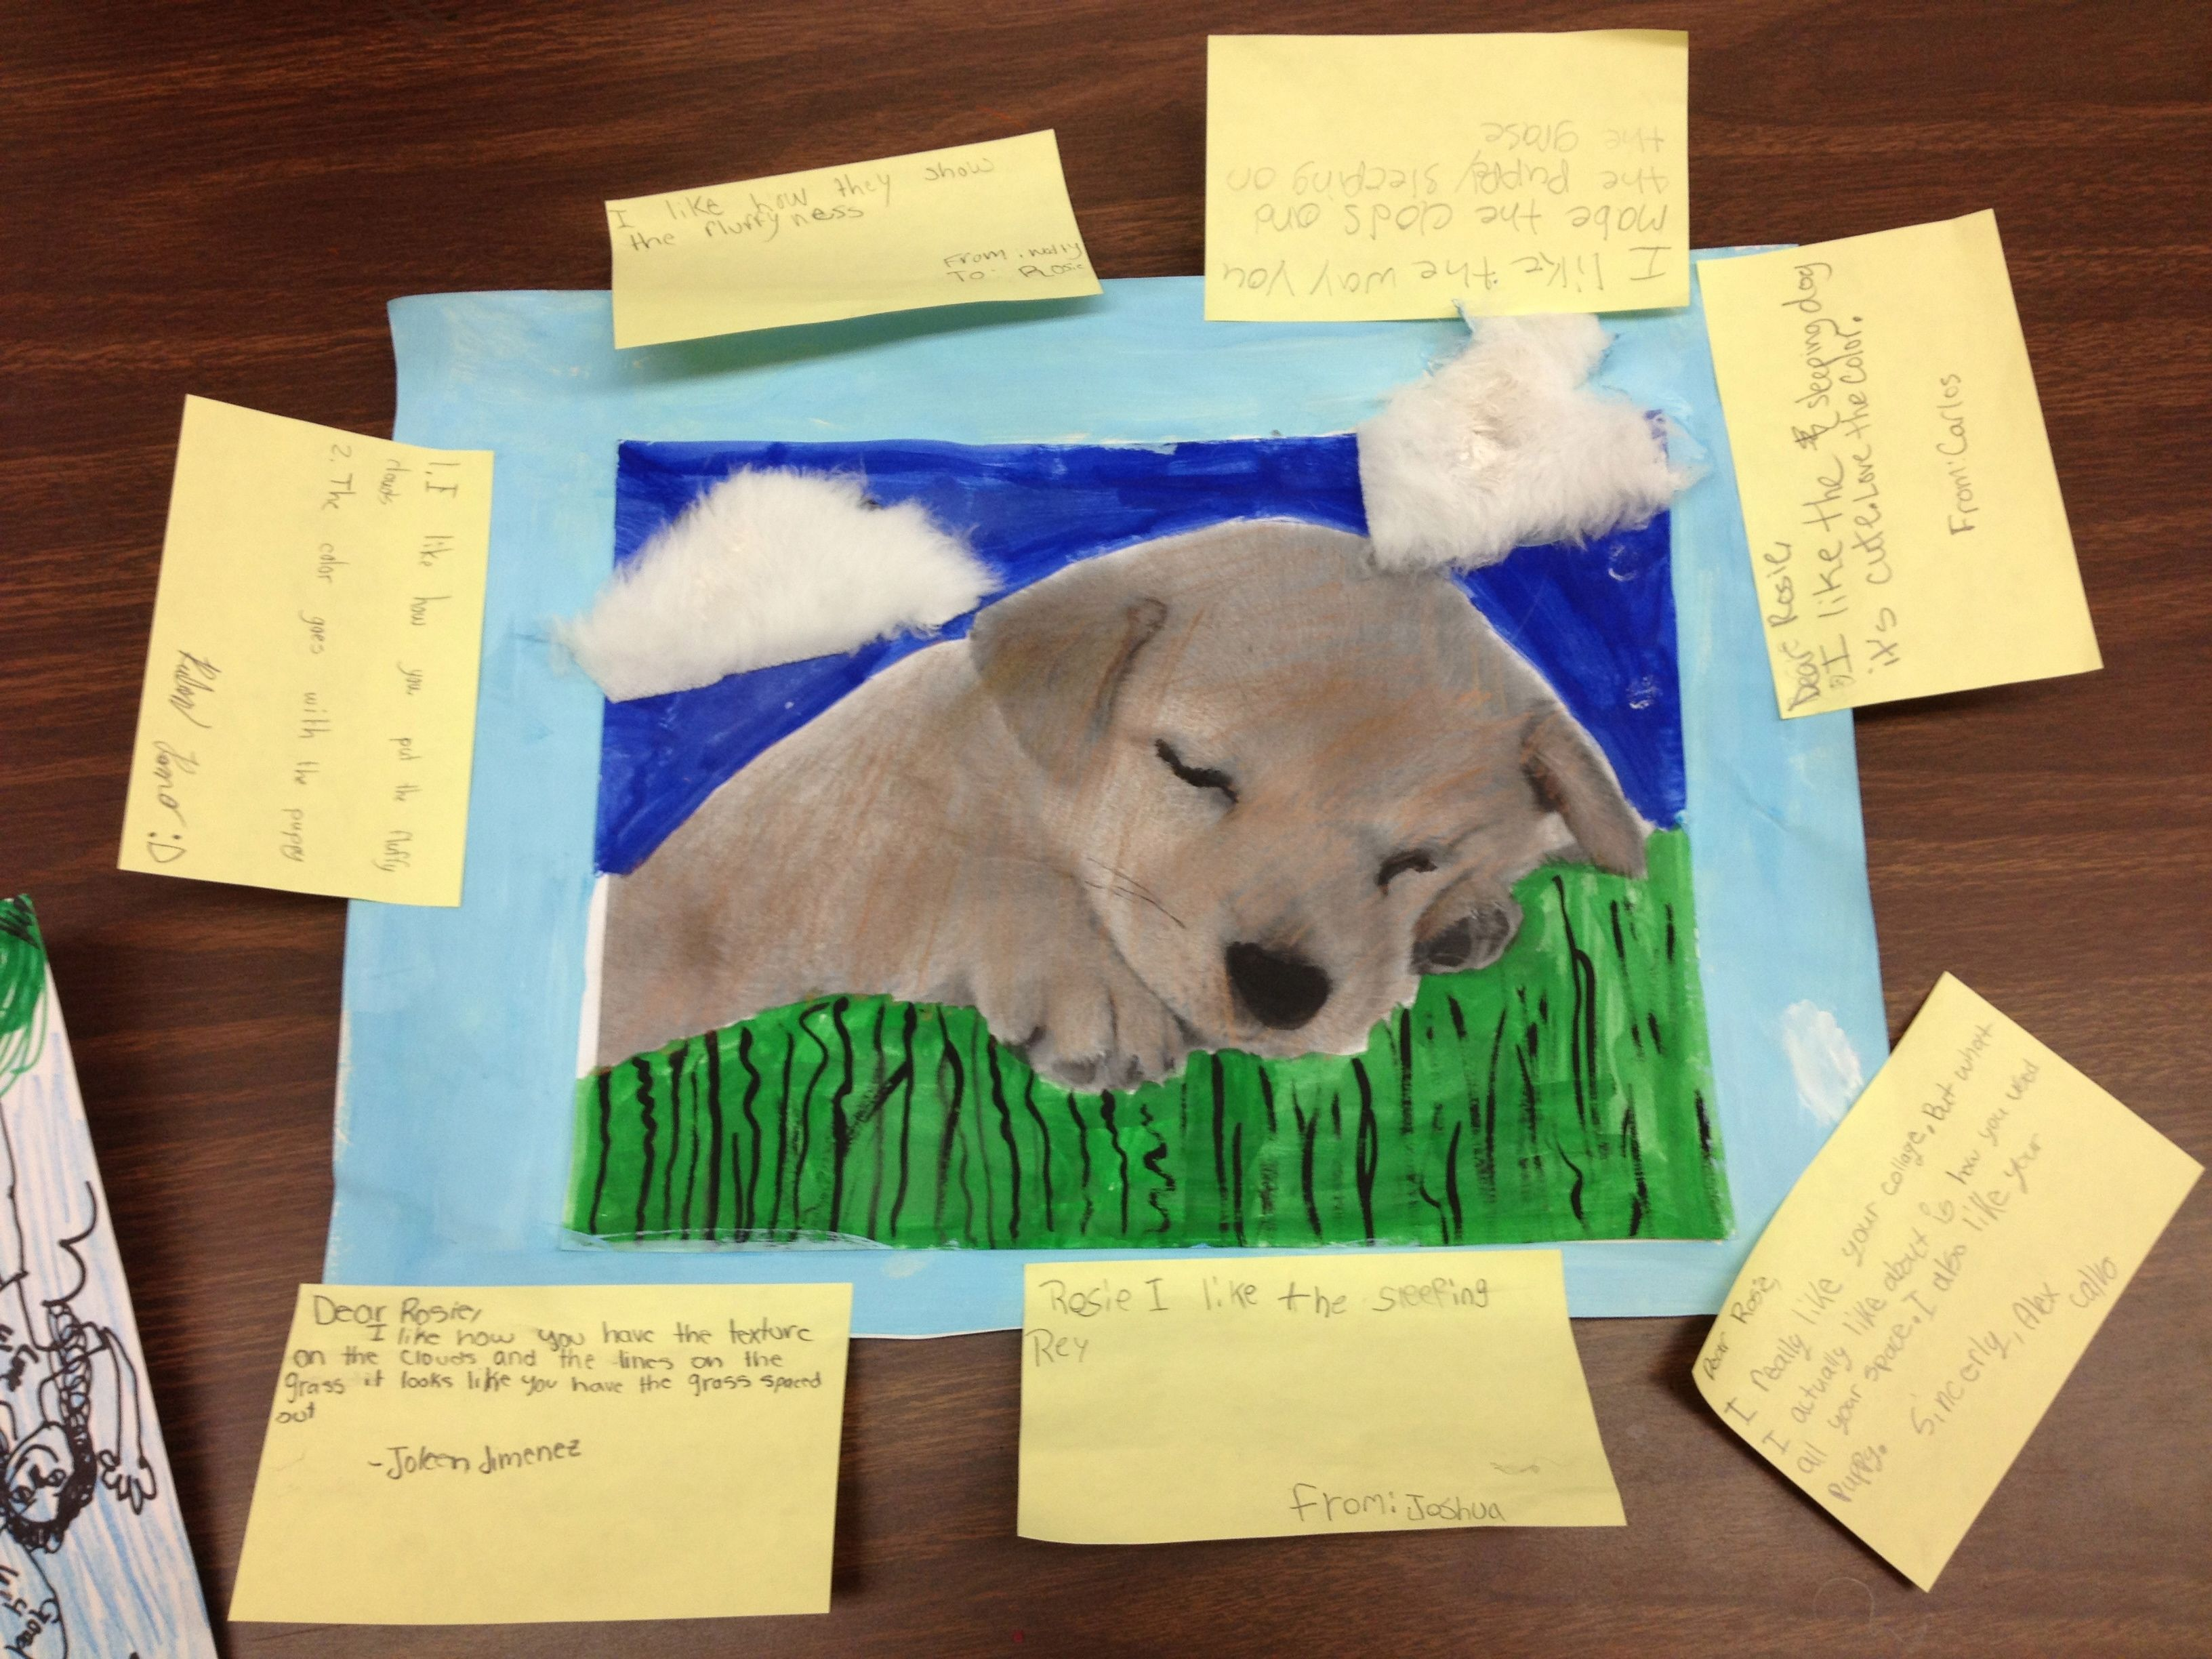 Gallery Walk With Student Comments On Post It Notes